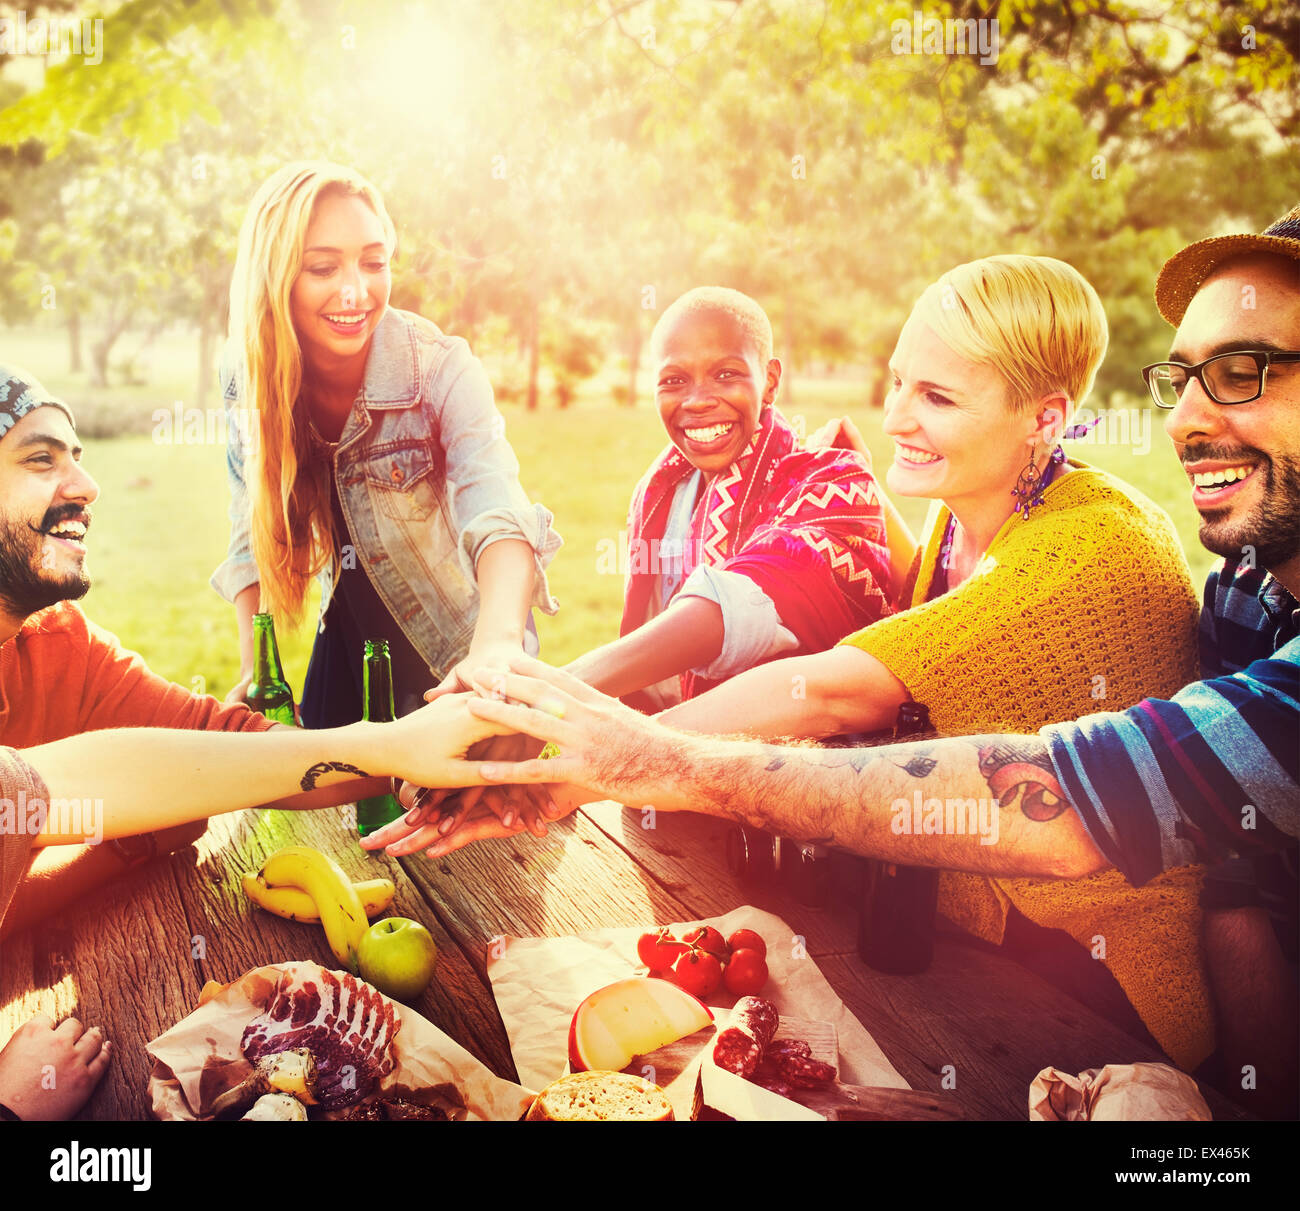 Friends Outdoors Camping Teamwork Unity Concept - Stock Image